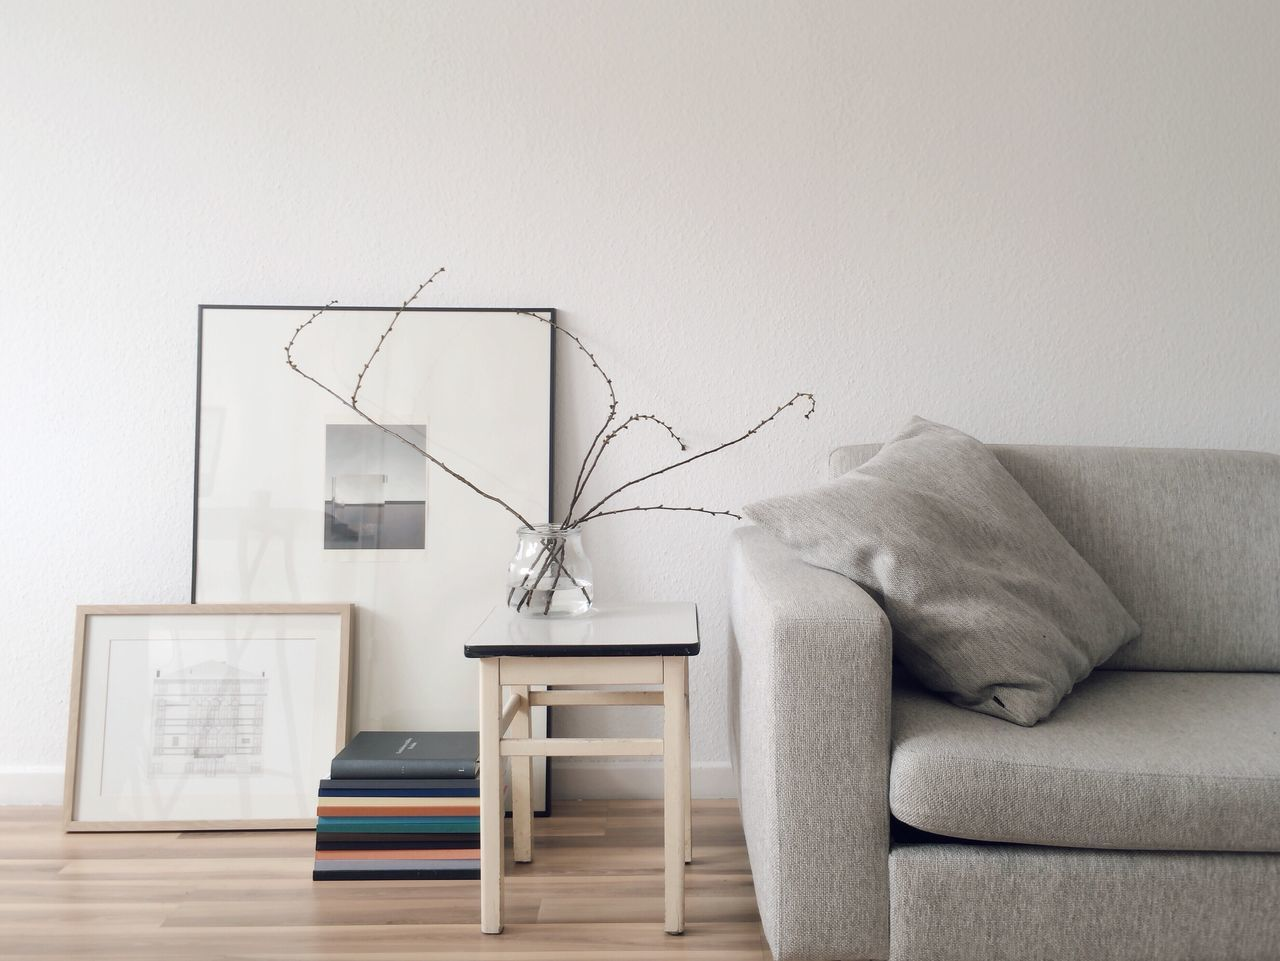 Sofa and table against wall at home